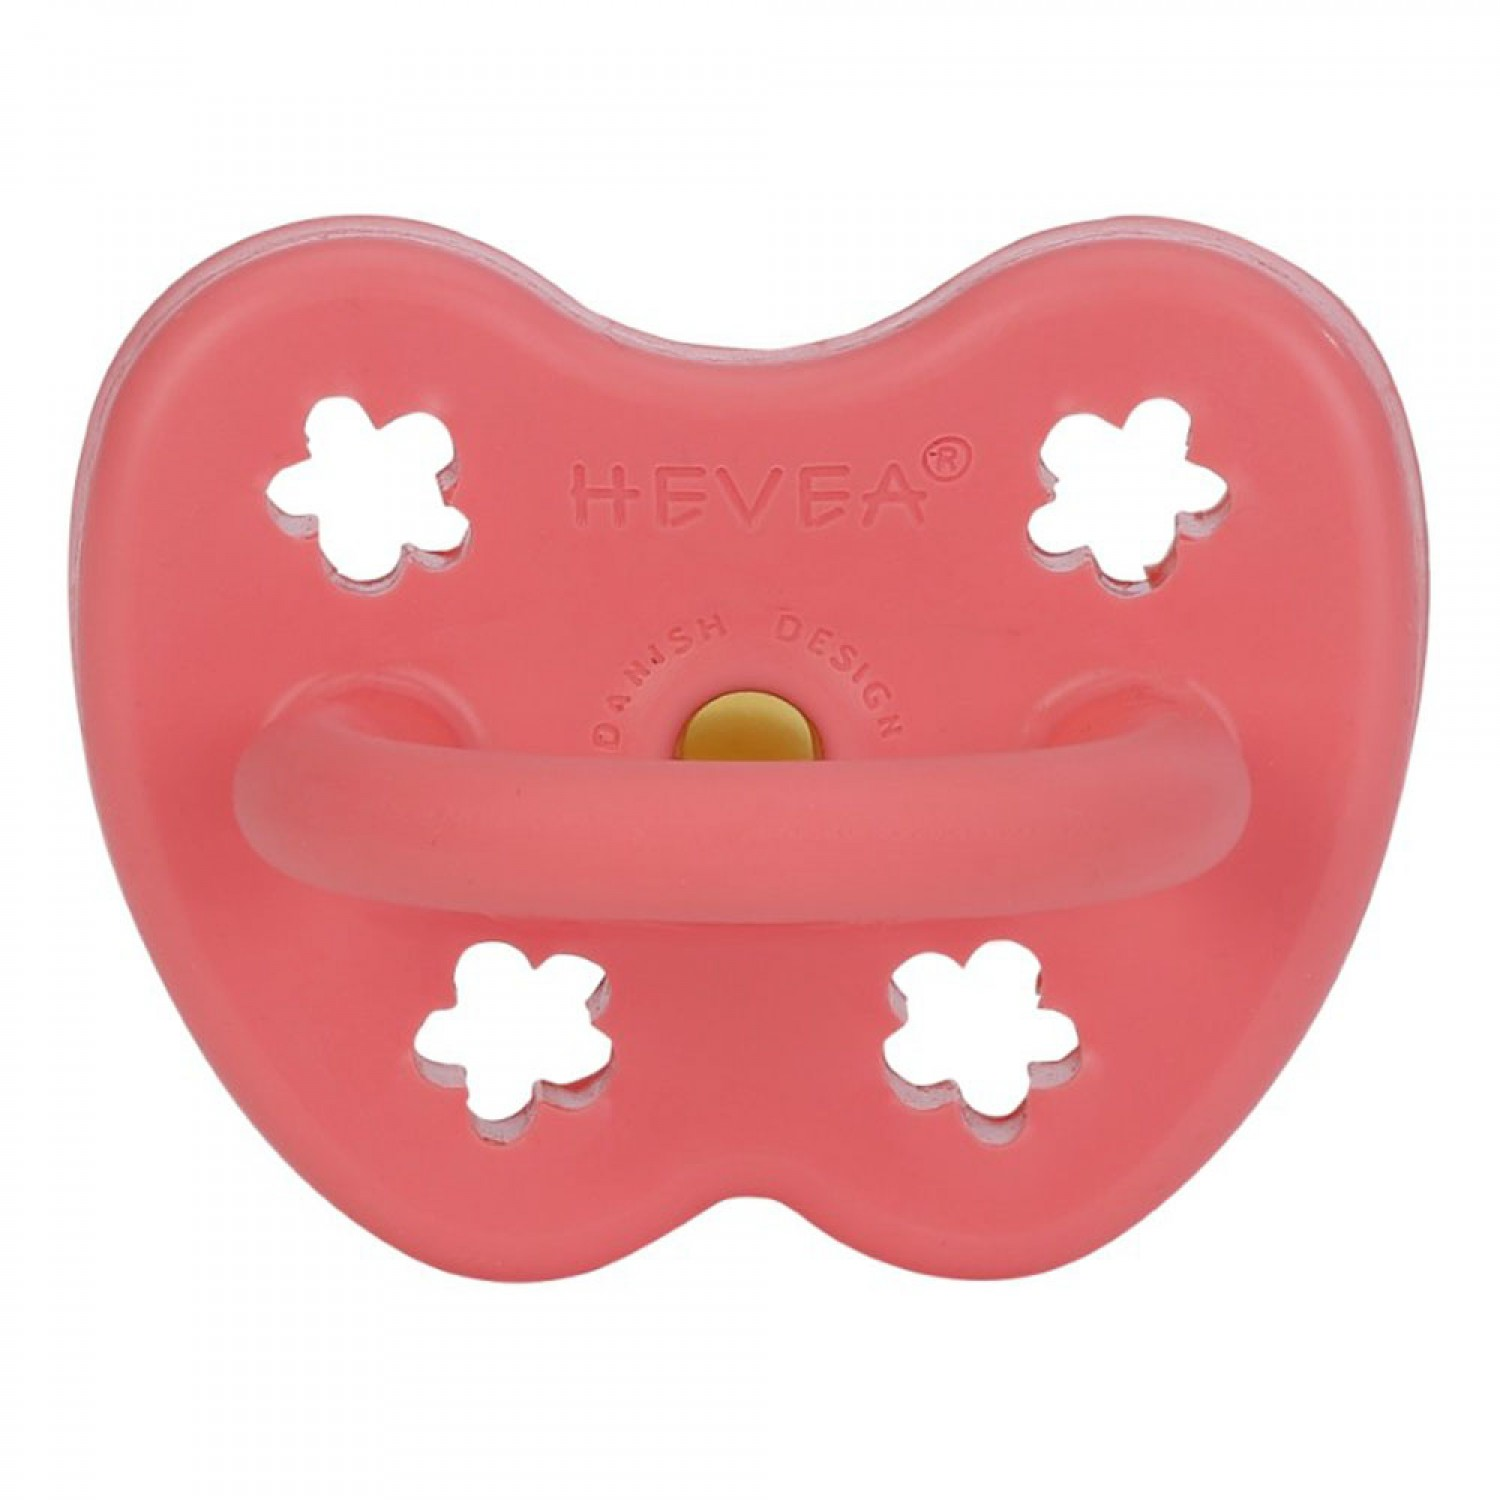 HEVEA Orhodontic Pacifier | Coral  3-36 Months